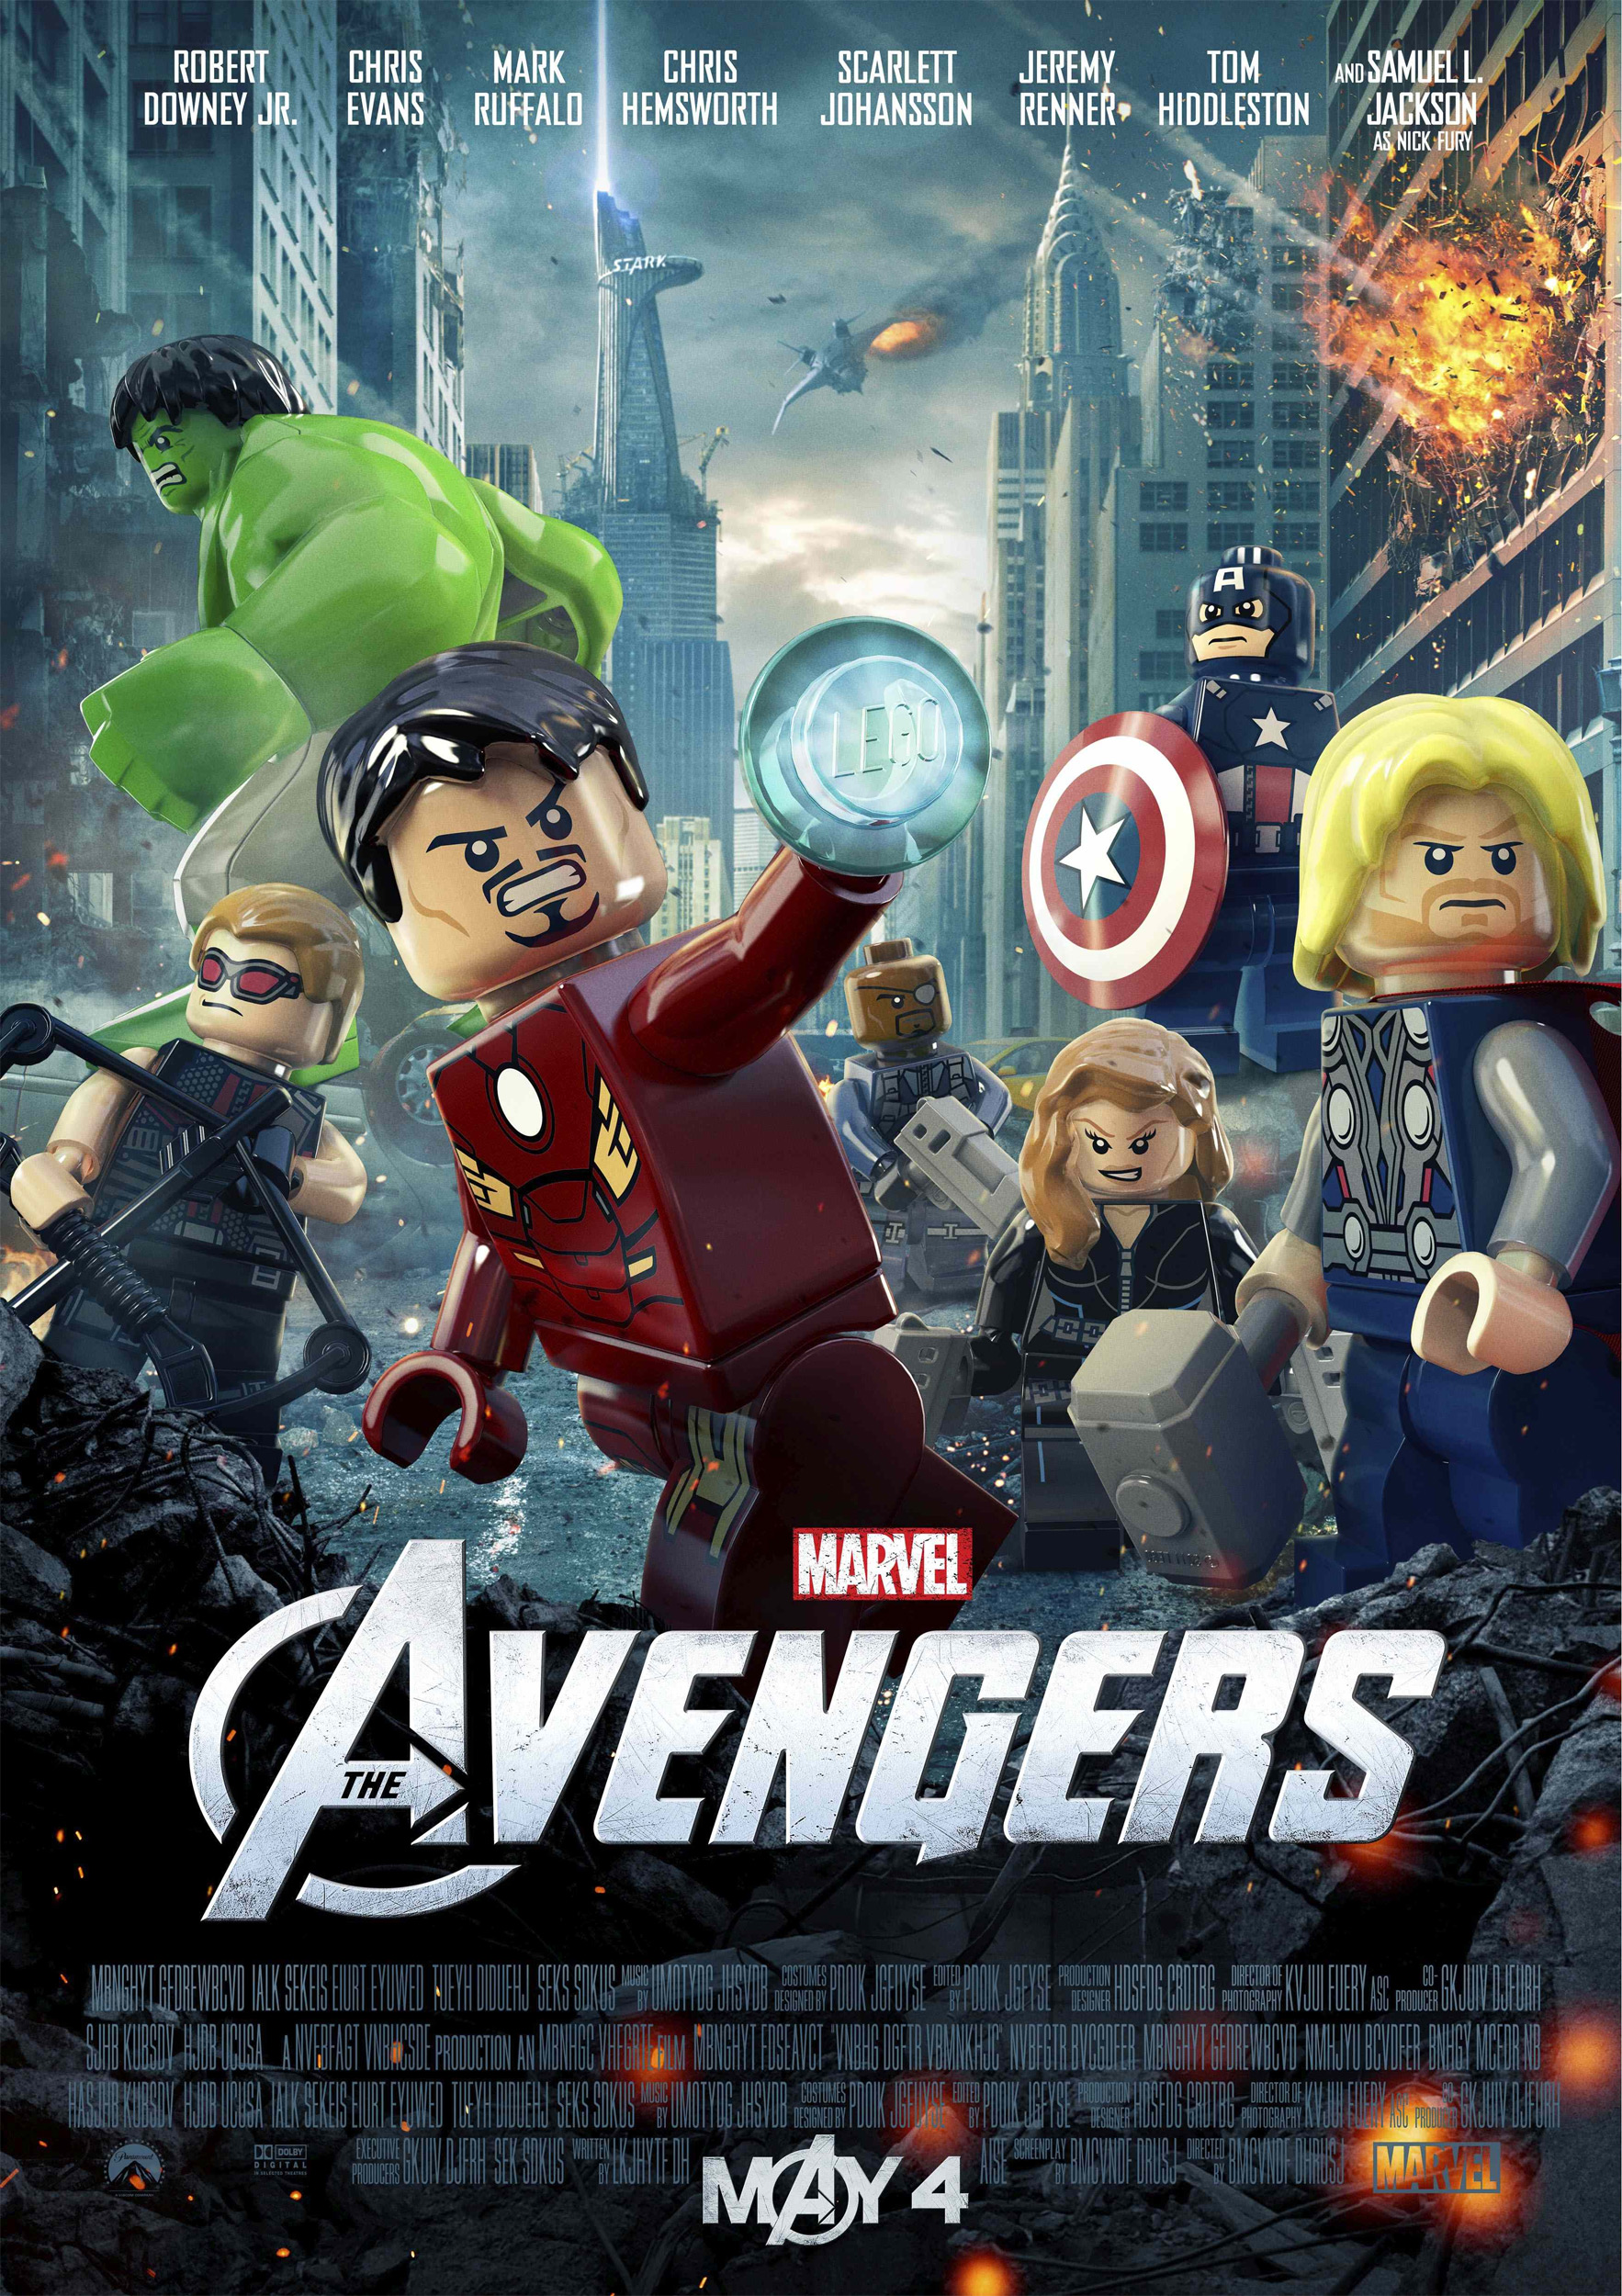 Marvels The Avengers LEGO Poster